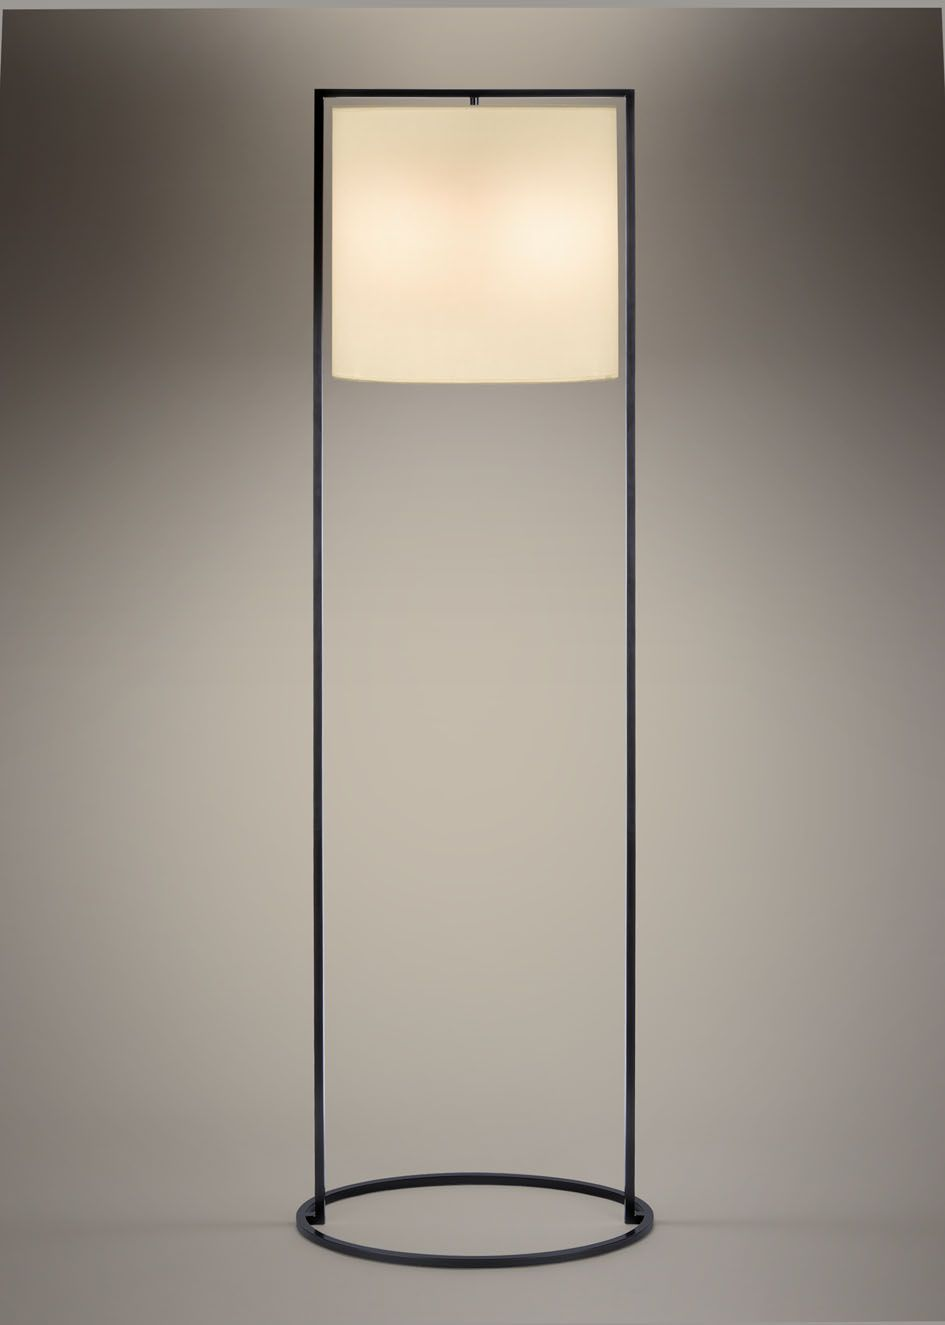 Kevin Reilly Lighting | Lights | Pinterest | Lights, Floor lamp and ...